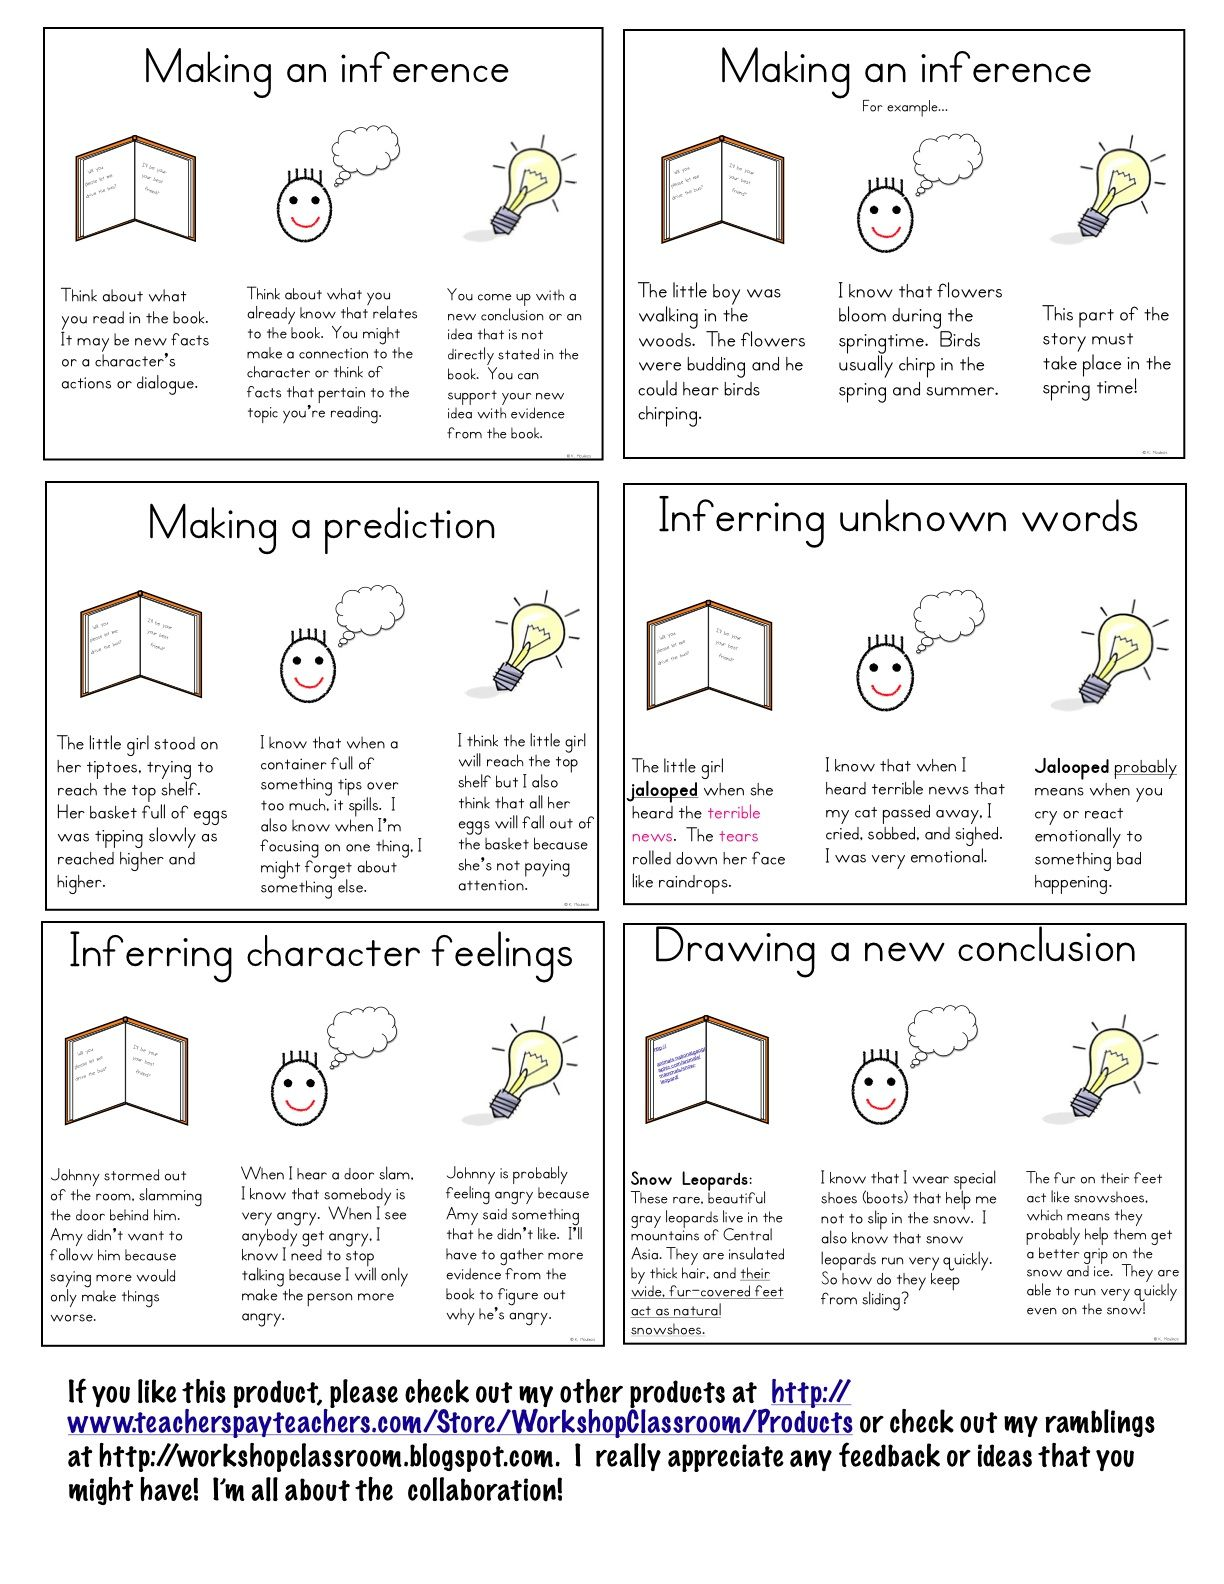 Free Worksheet 3rd Grade Inferencing Worksheets 17 best images about inferencing on pinterest graphic organizers beautiful artwork and teacher notebook